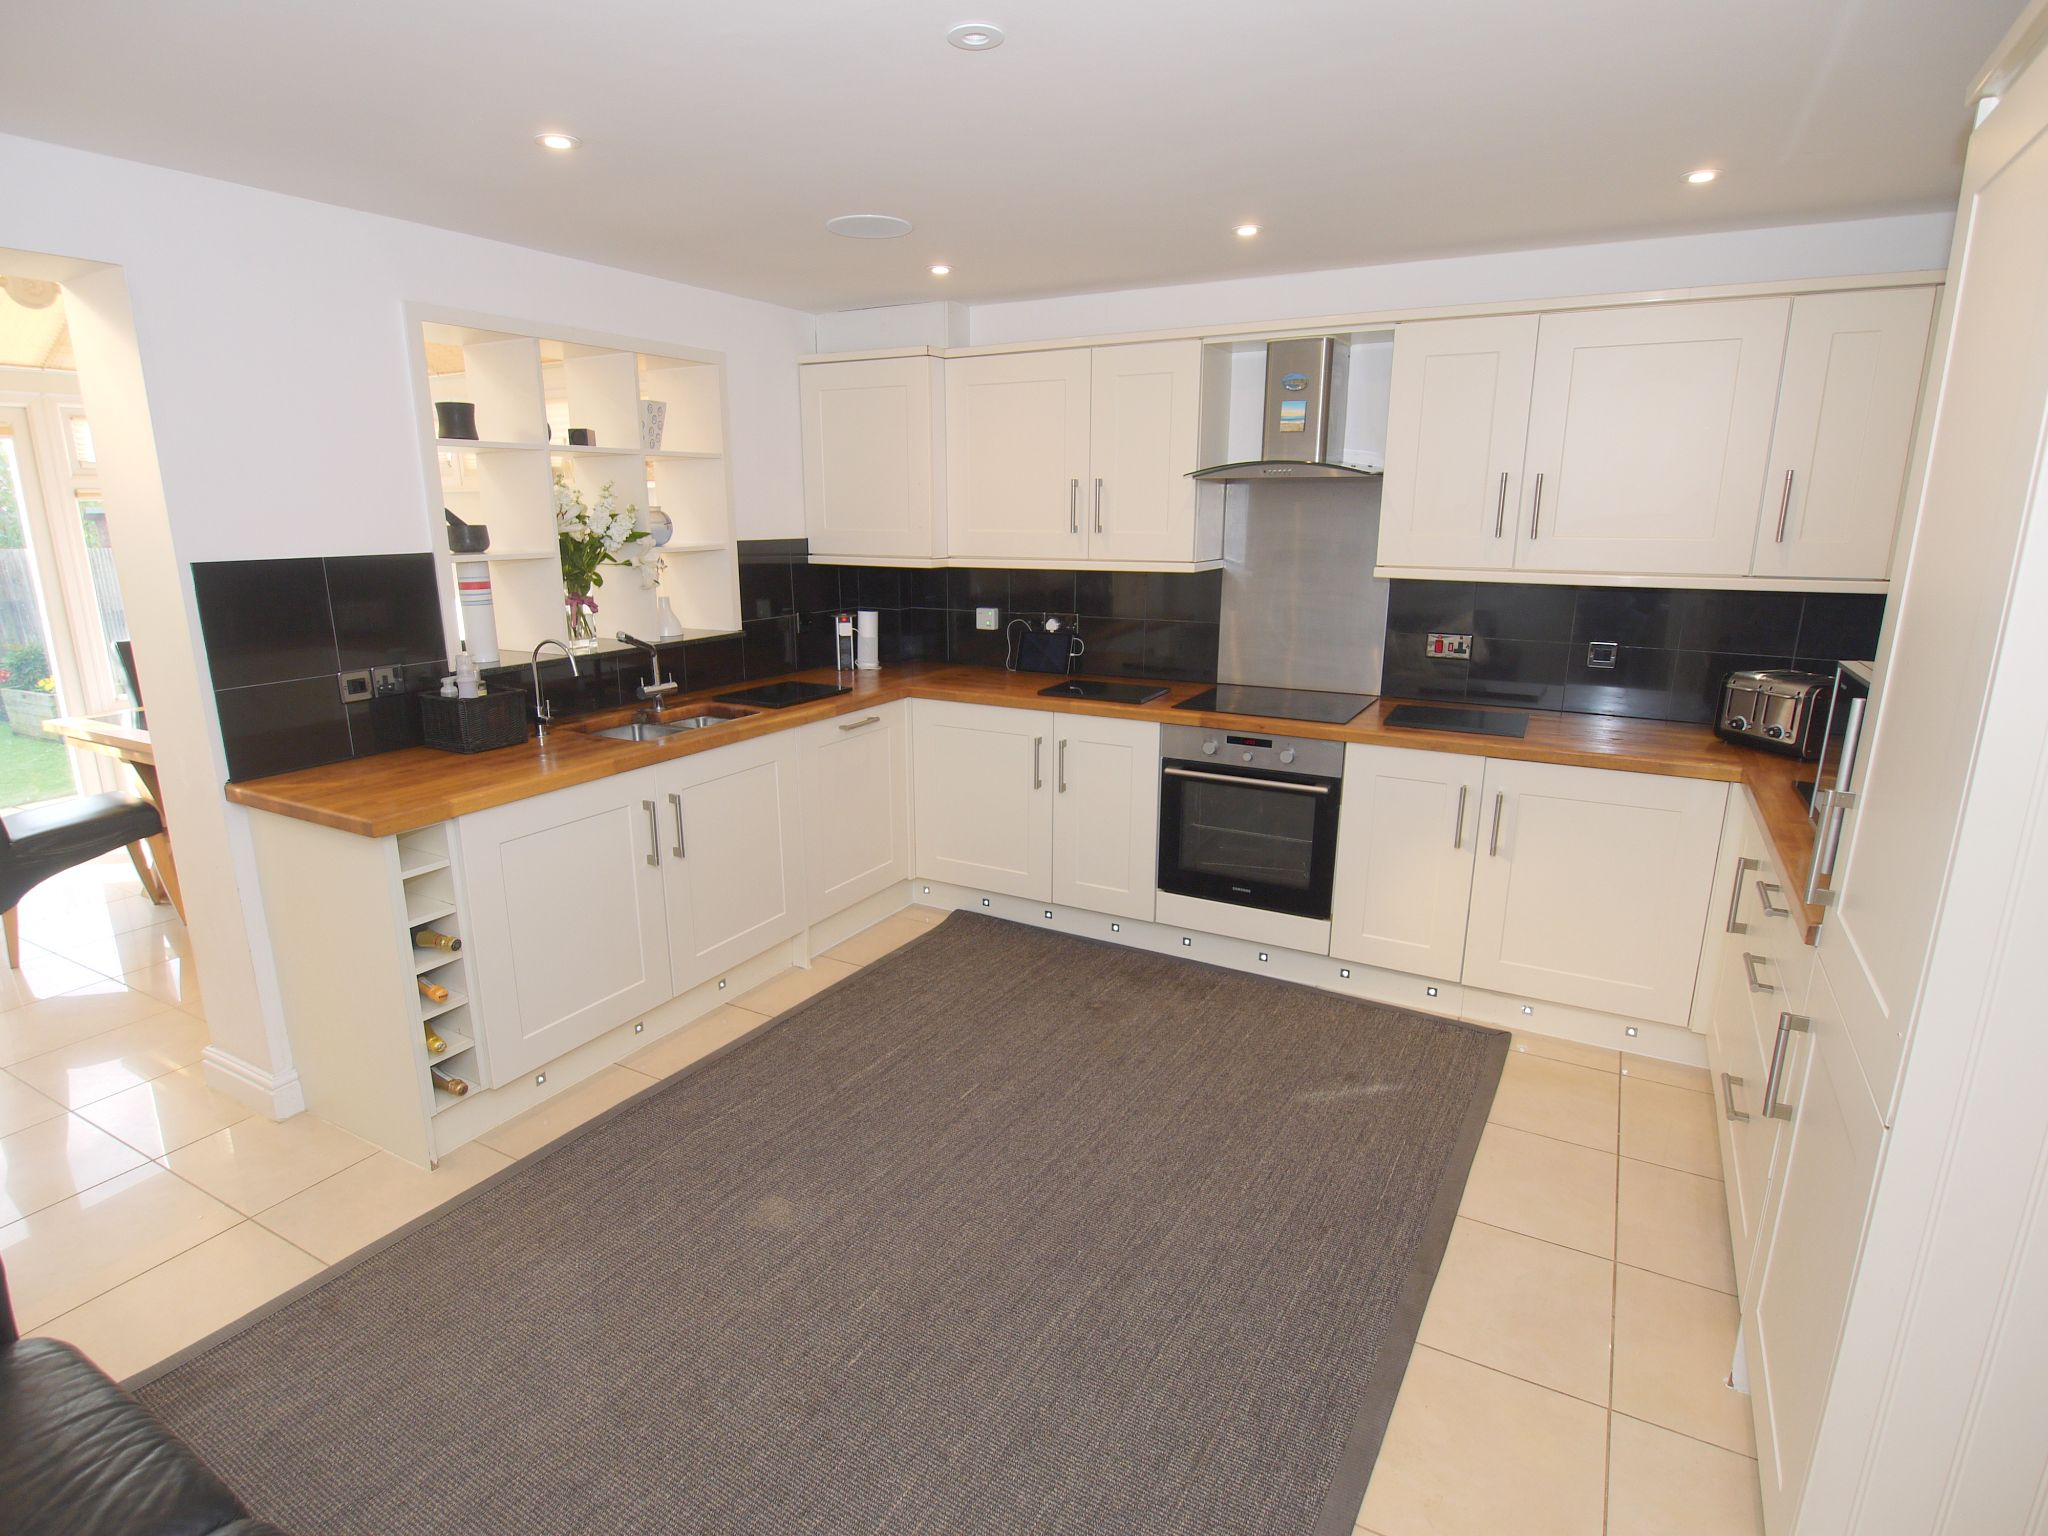 4 bedroom town house For Sale in Sevenoaks - Photograph 3